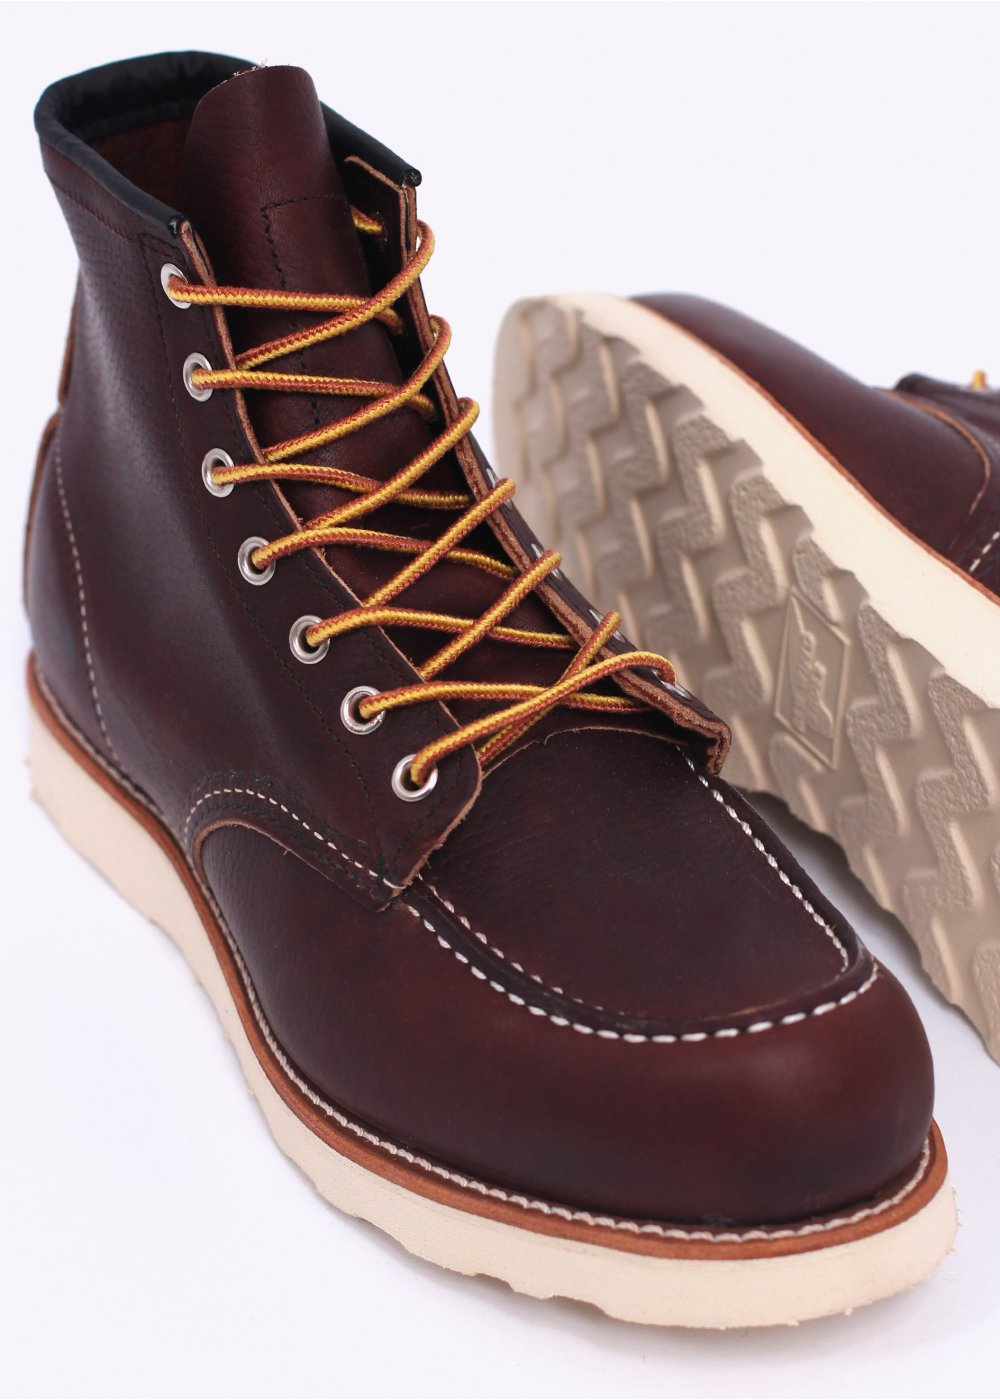 c3ce4d700e5 Red Wing Shoes 8138 Heritage Work 6